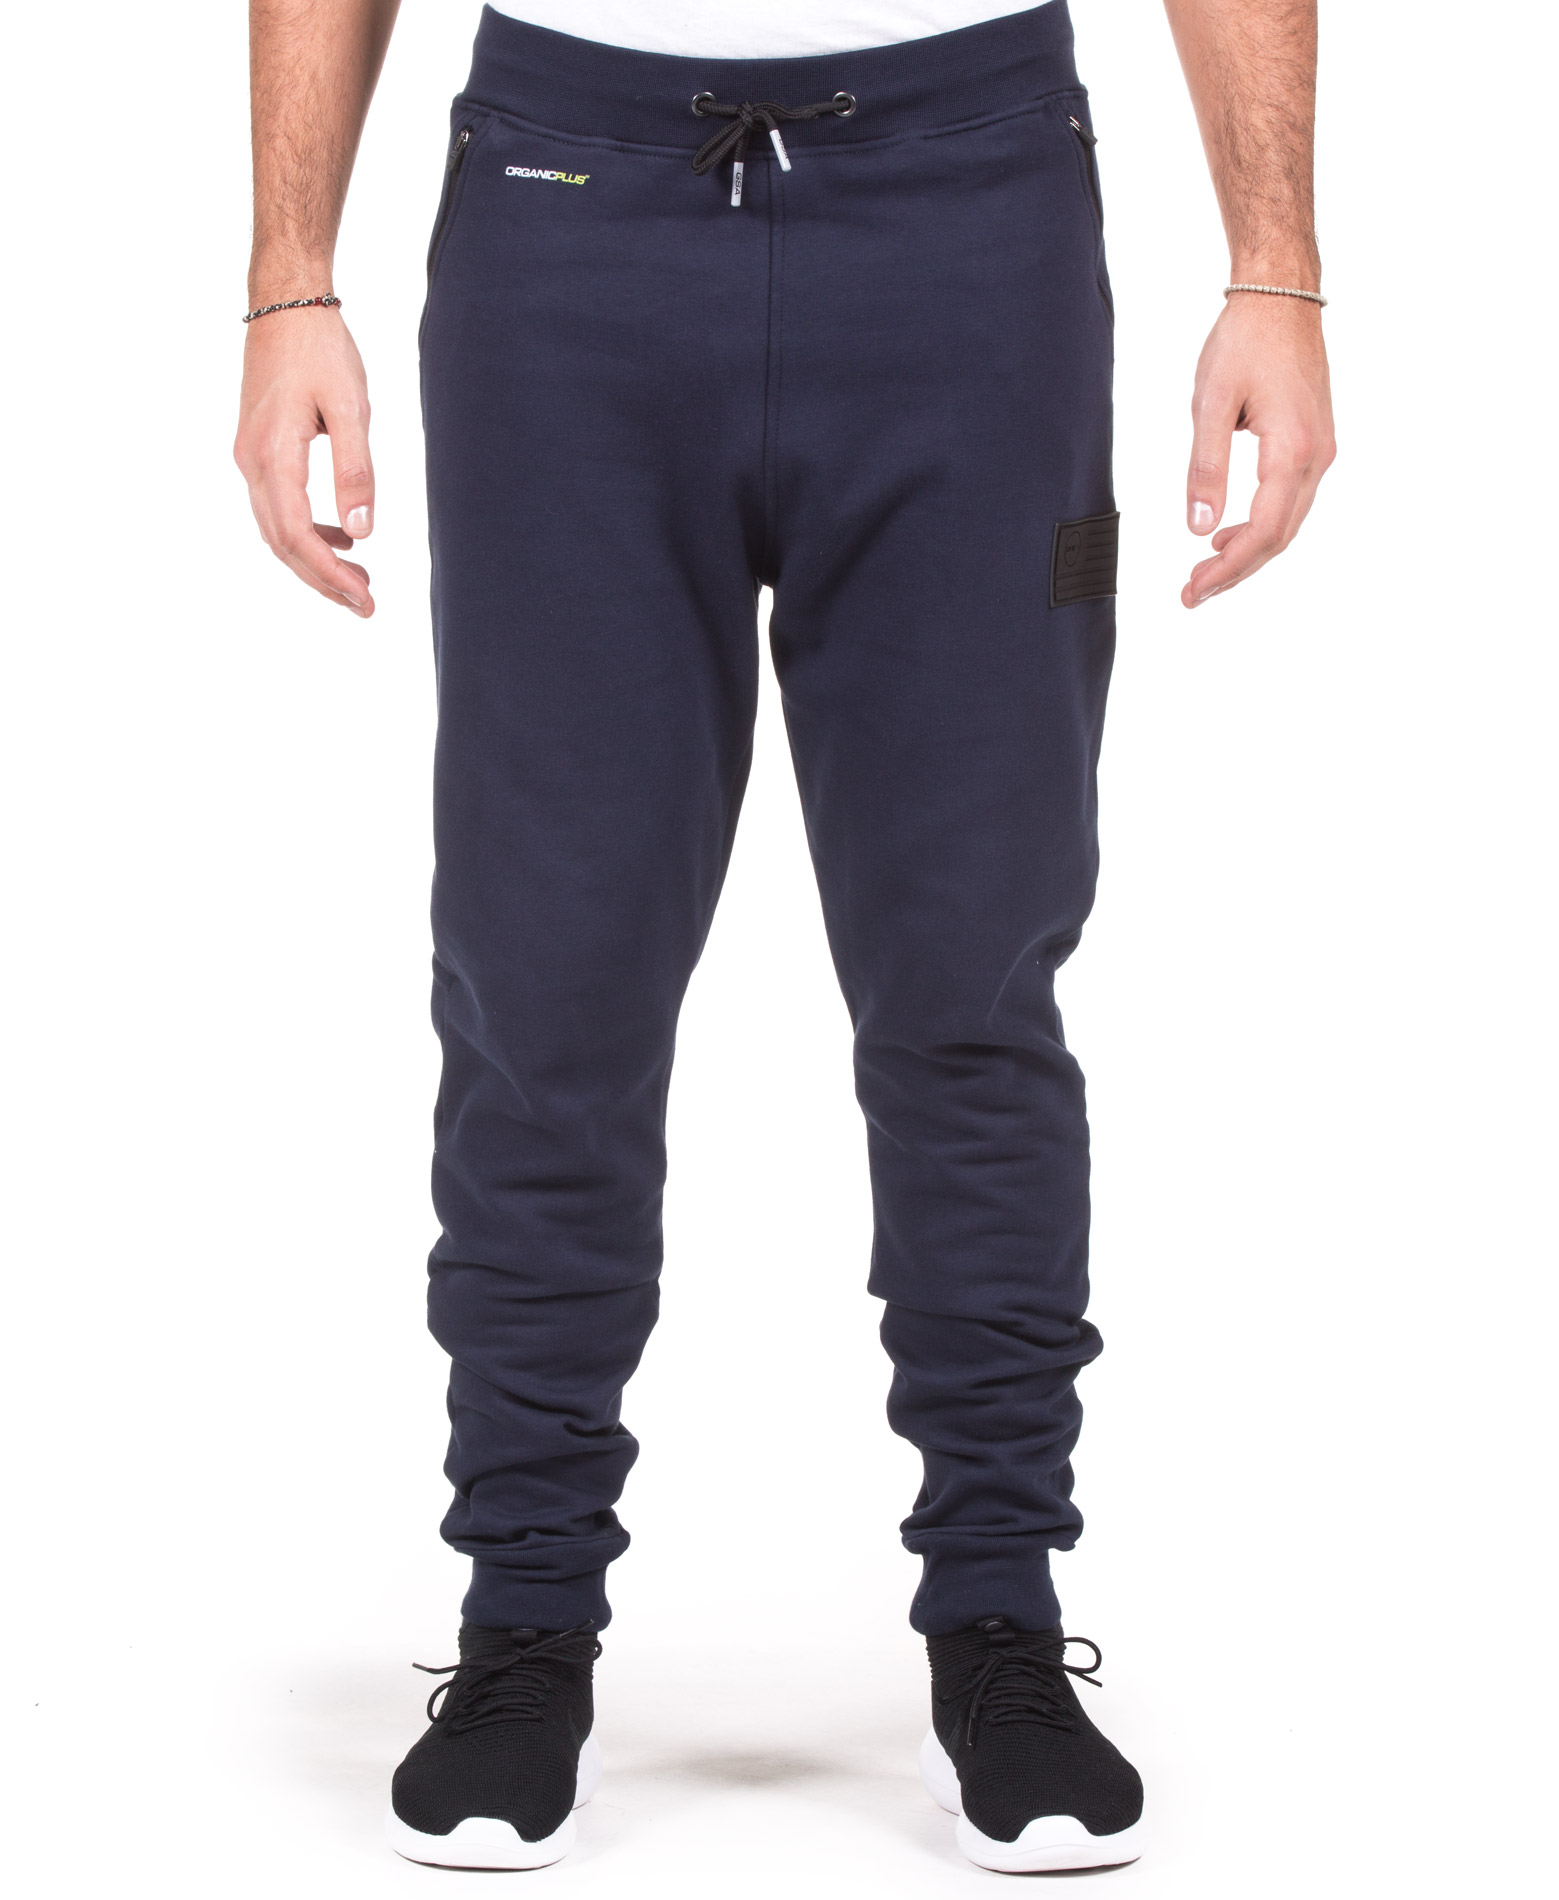 GSA SUPPERCOTTON PLUS SLIM SWEATPANTS 17-17023-03 INK Μπλε